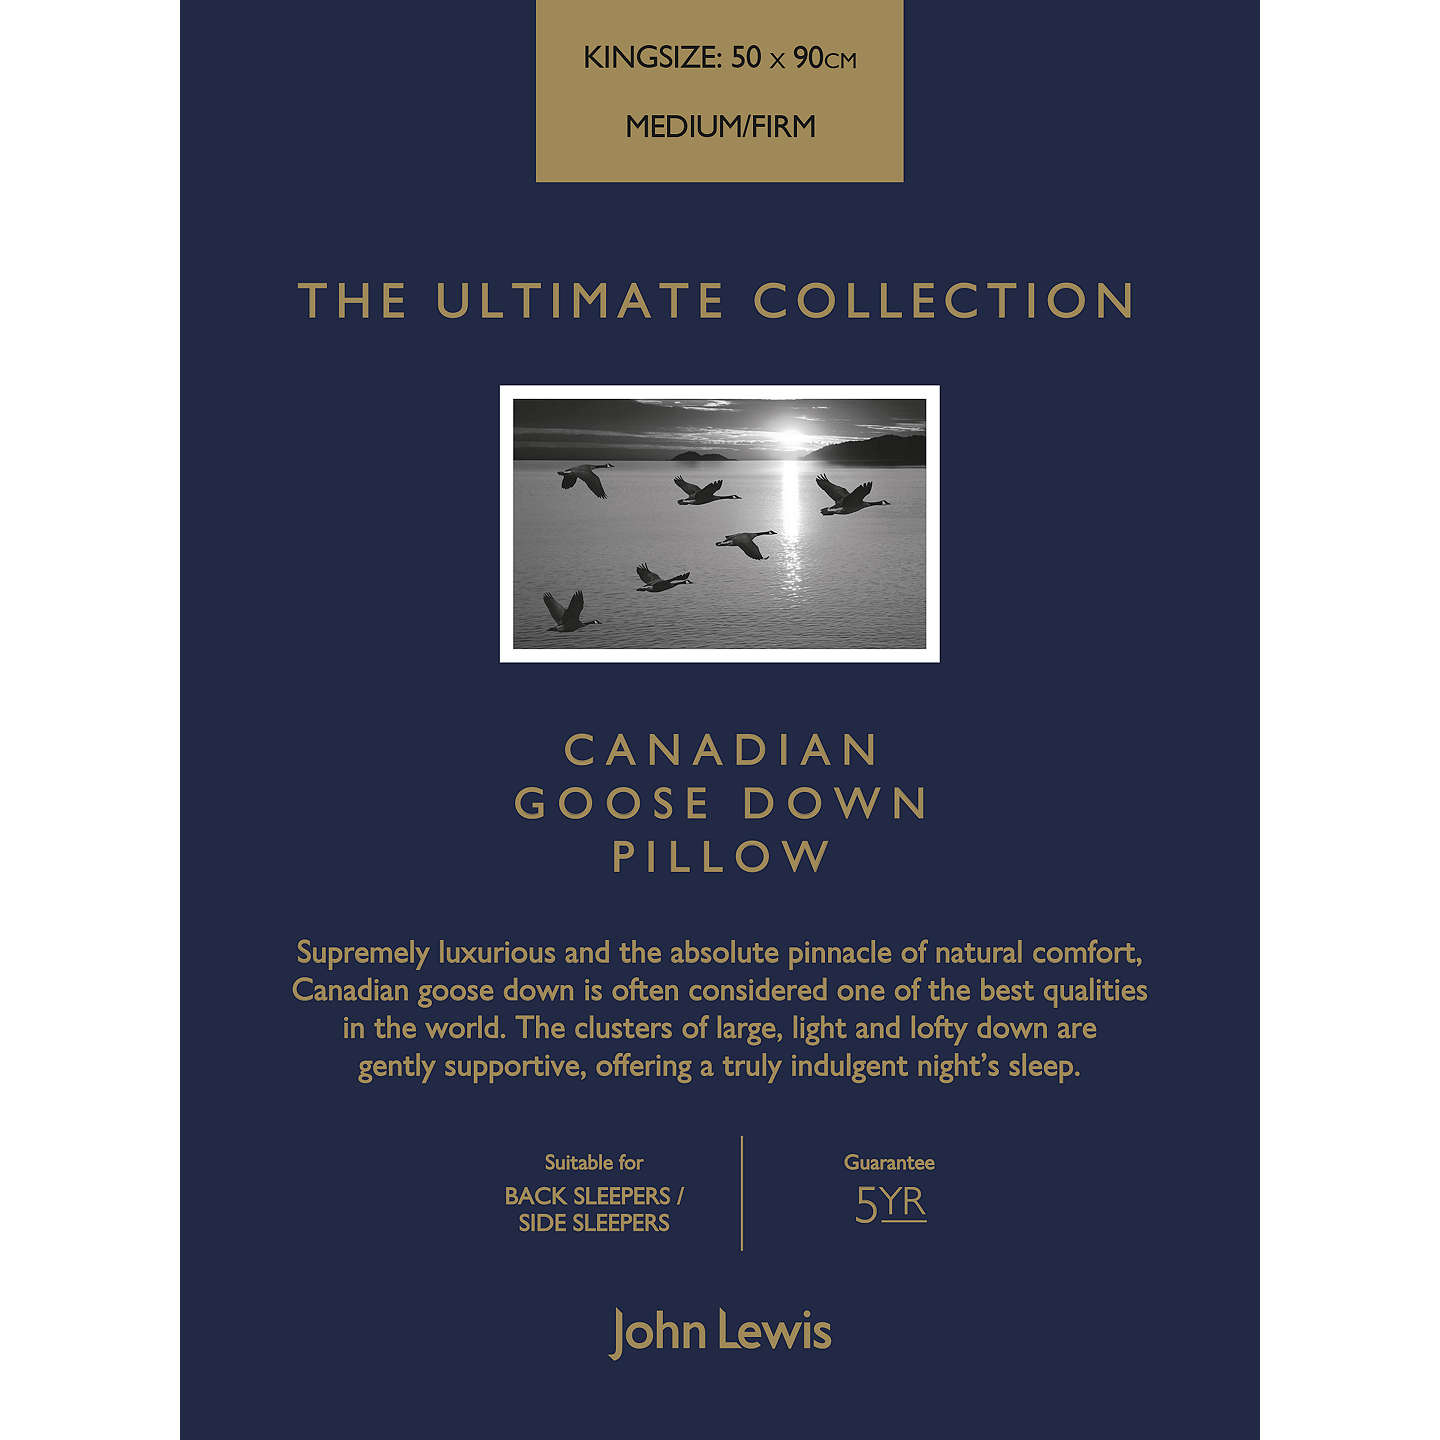 BuyJohn Lewis The Ultimate Collection Canadian Goose Down Kingsize Pillow, Medium/Firm Online at johnlewis.com